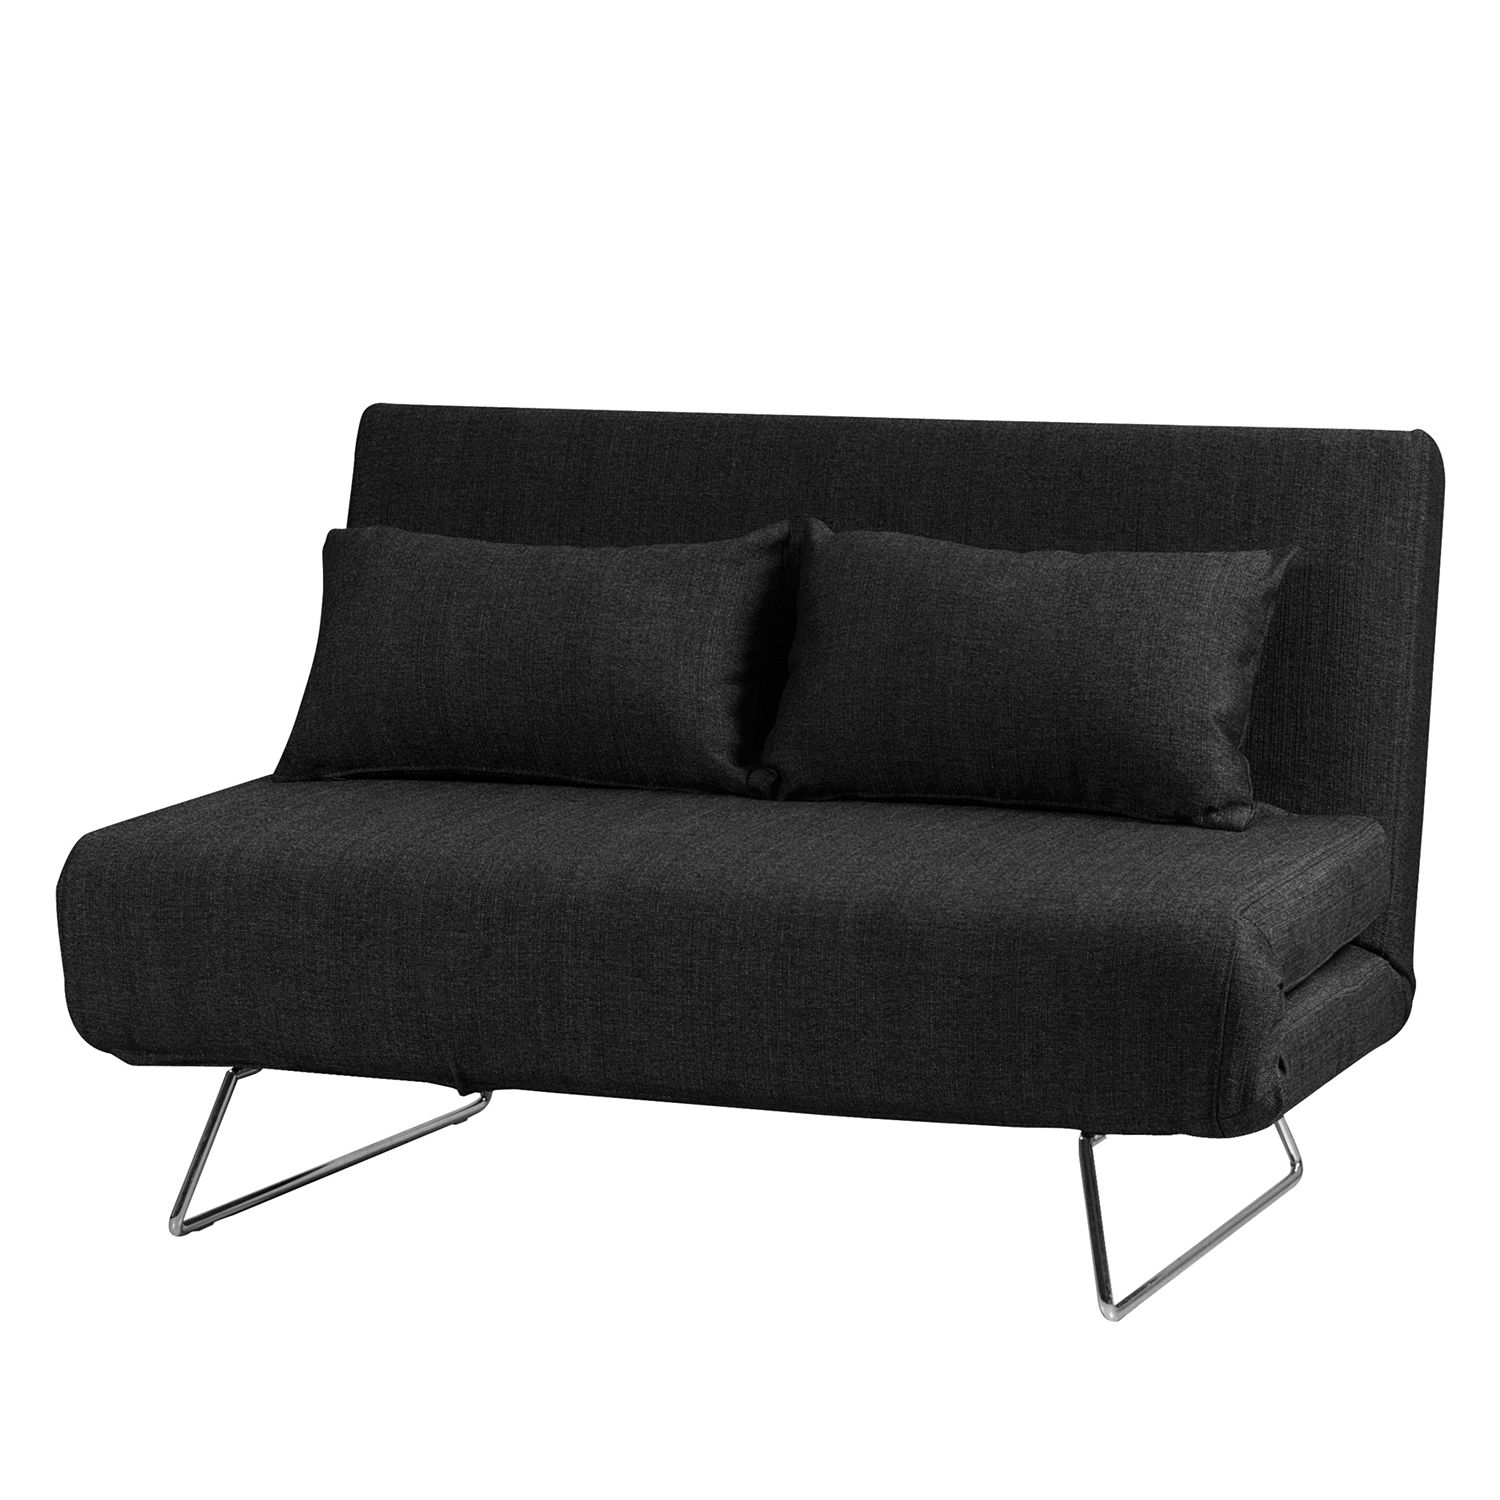 Schlafsofa Frizzo Webstoff - Stoff Livia Anthrazit